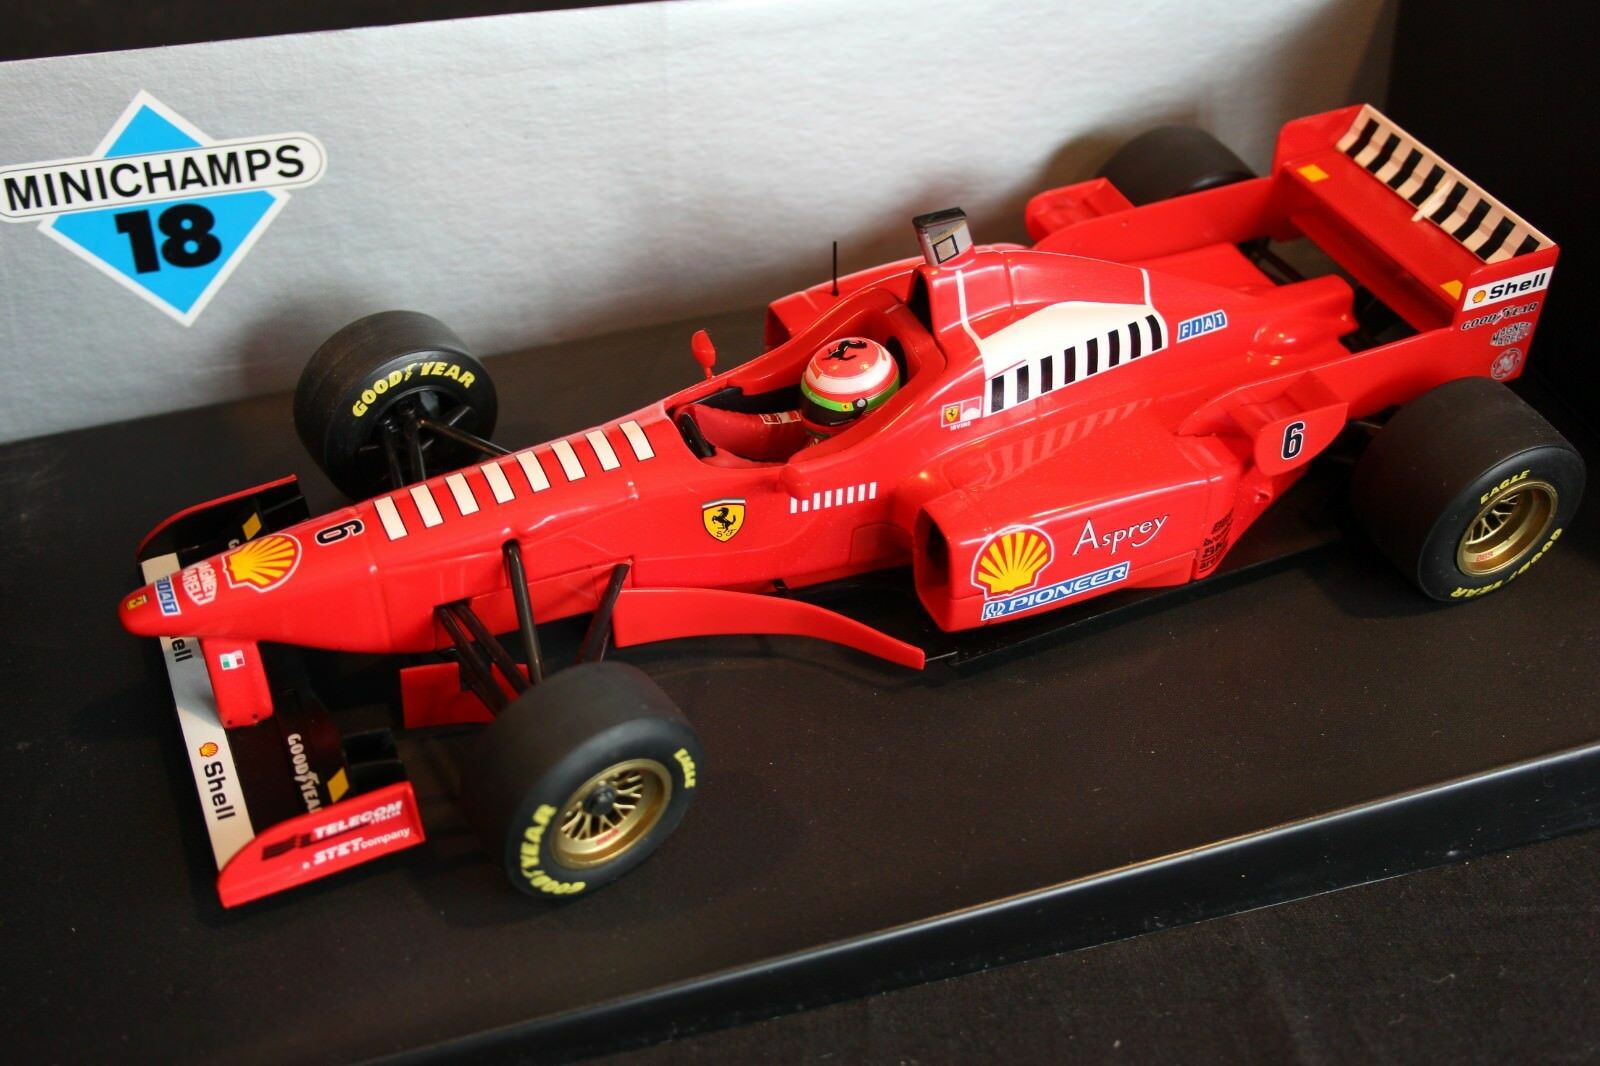 Minichamps Ferrari F1 Launch Car 1997 1 18  6 Eddie Irvine (GBR)